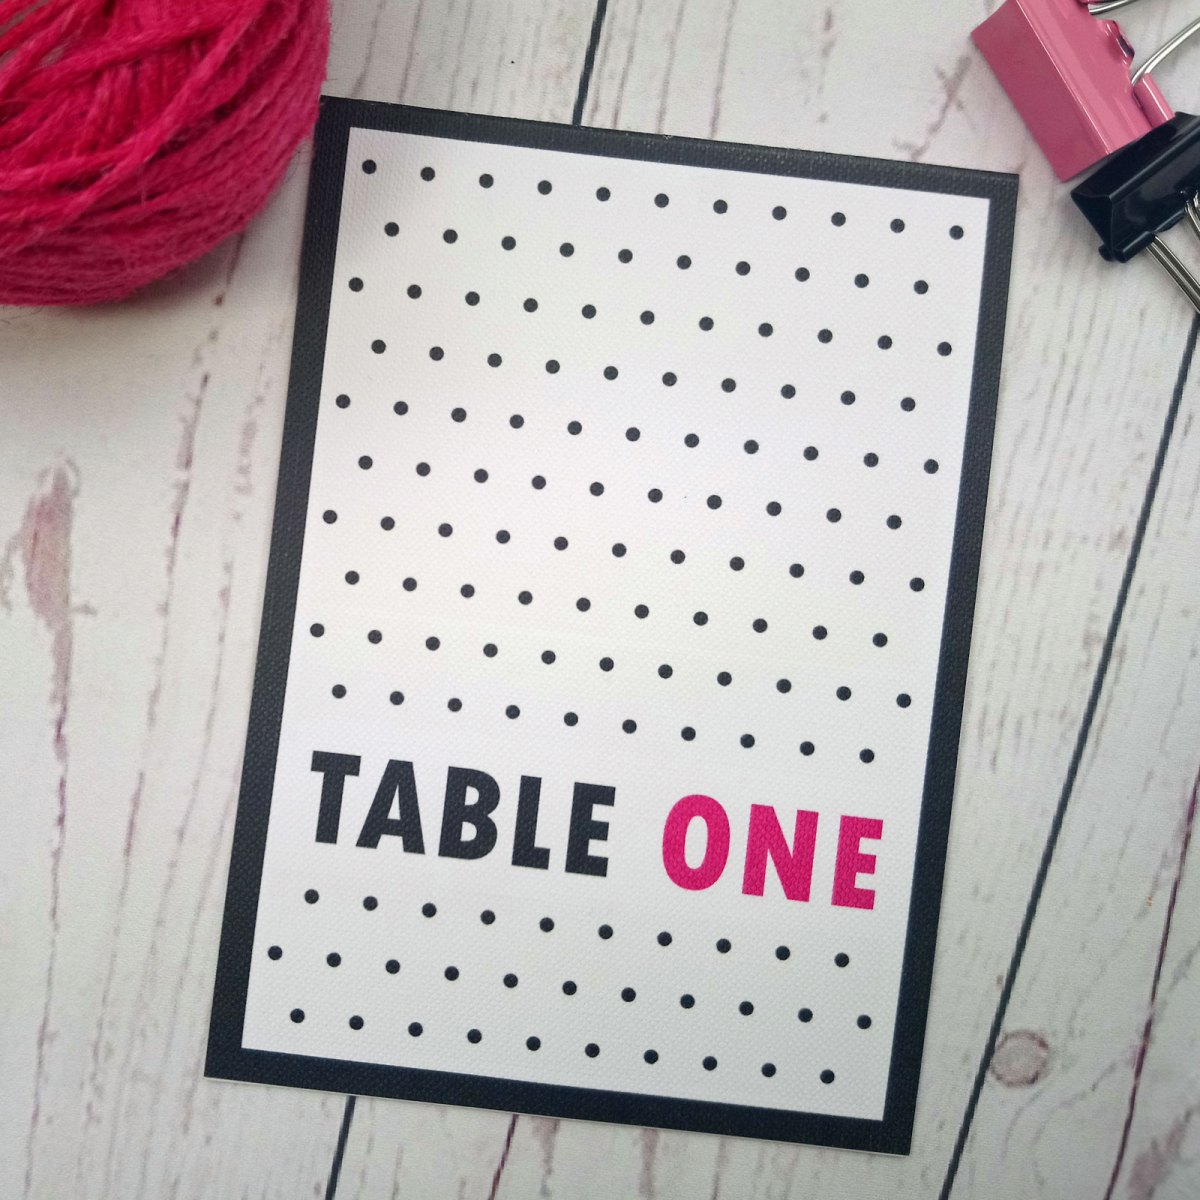 Polka Dot Table number on white textured card in black and pink with polka dots.